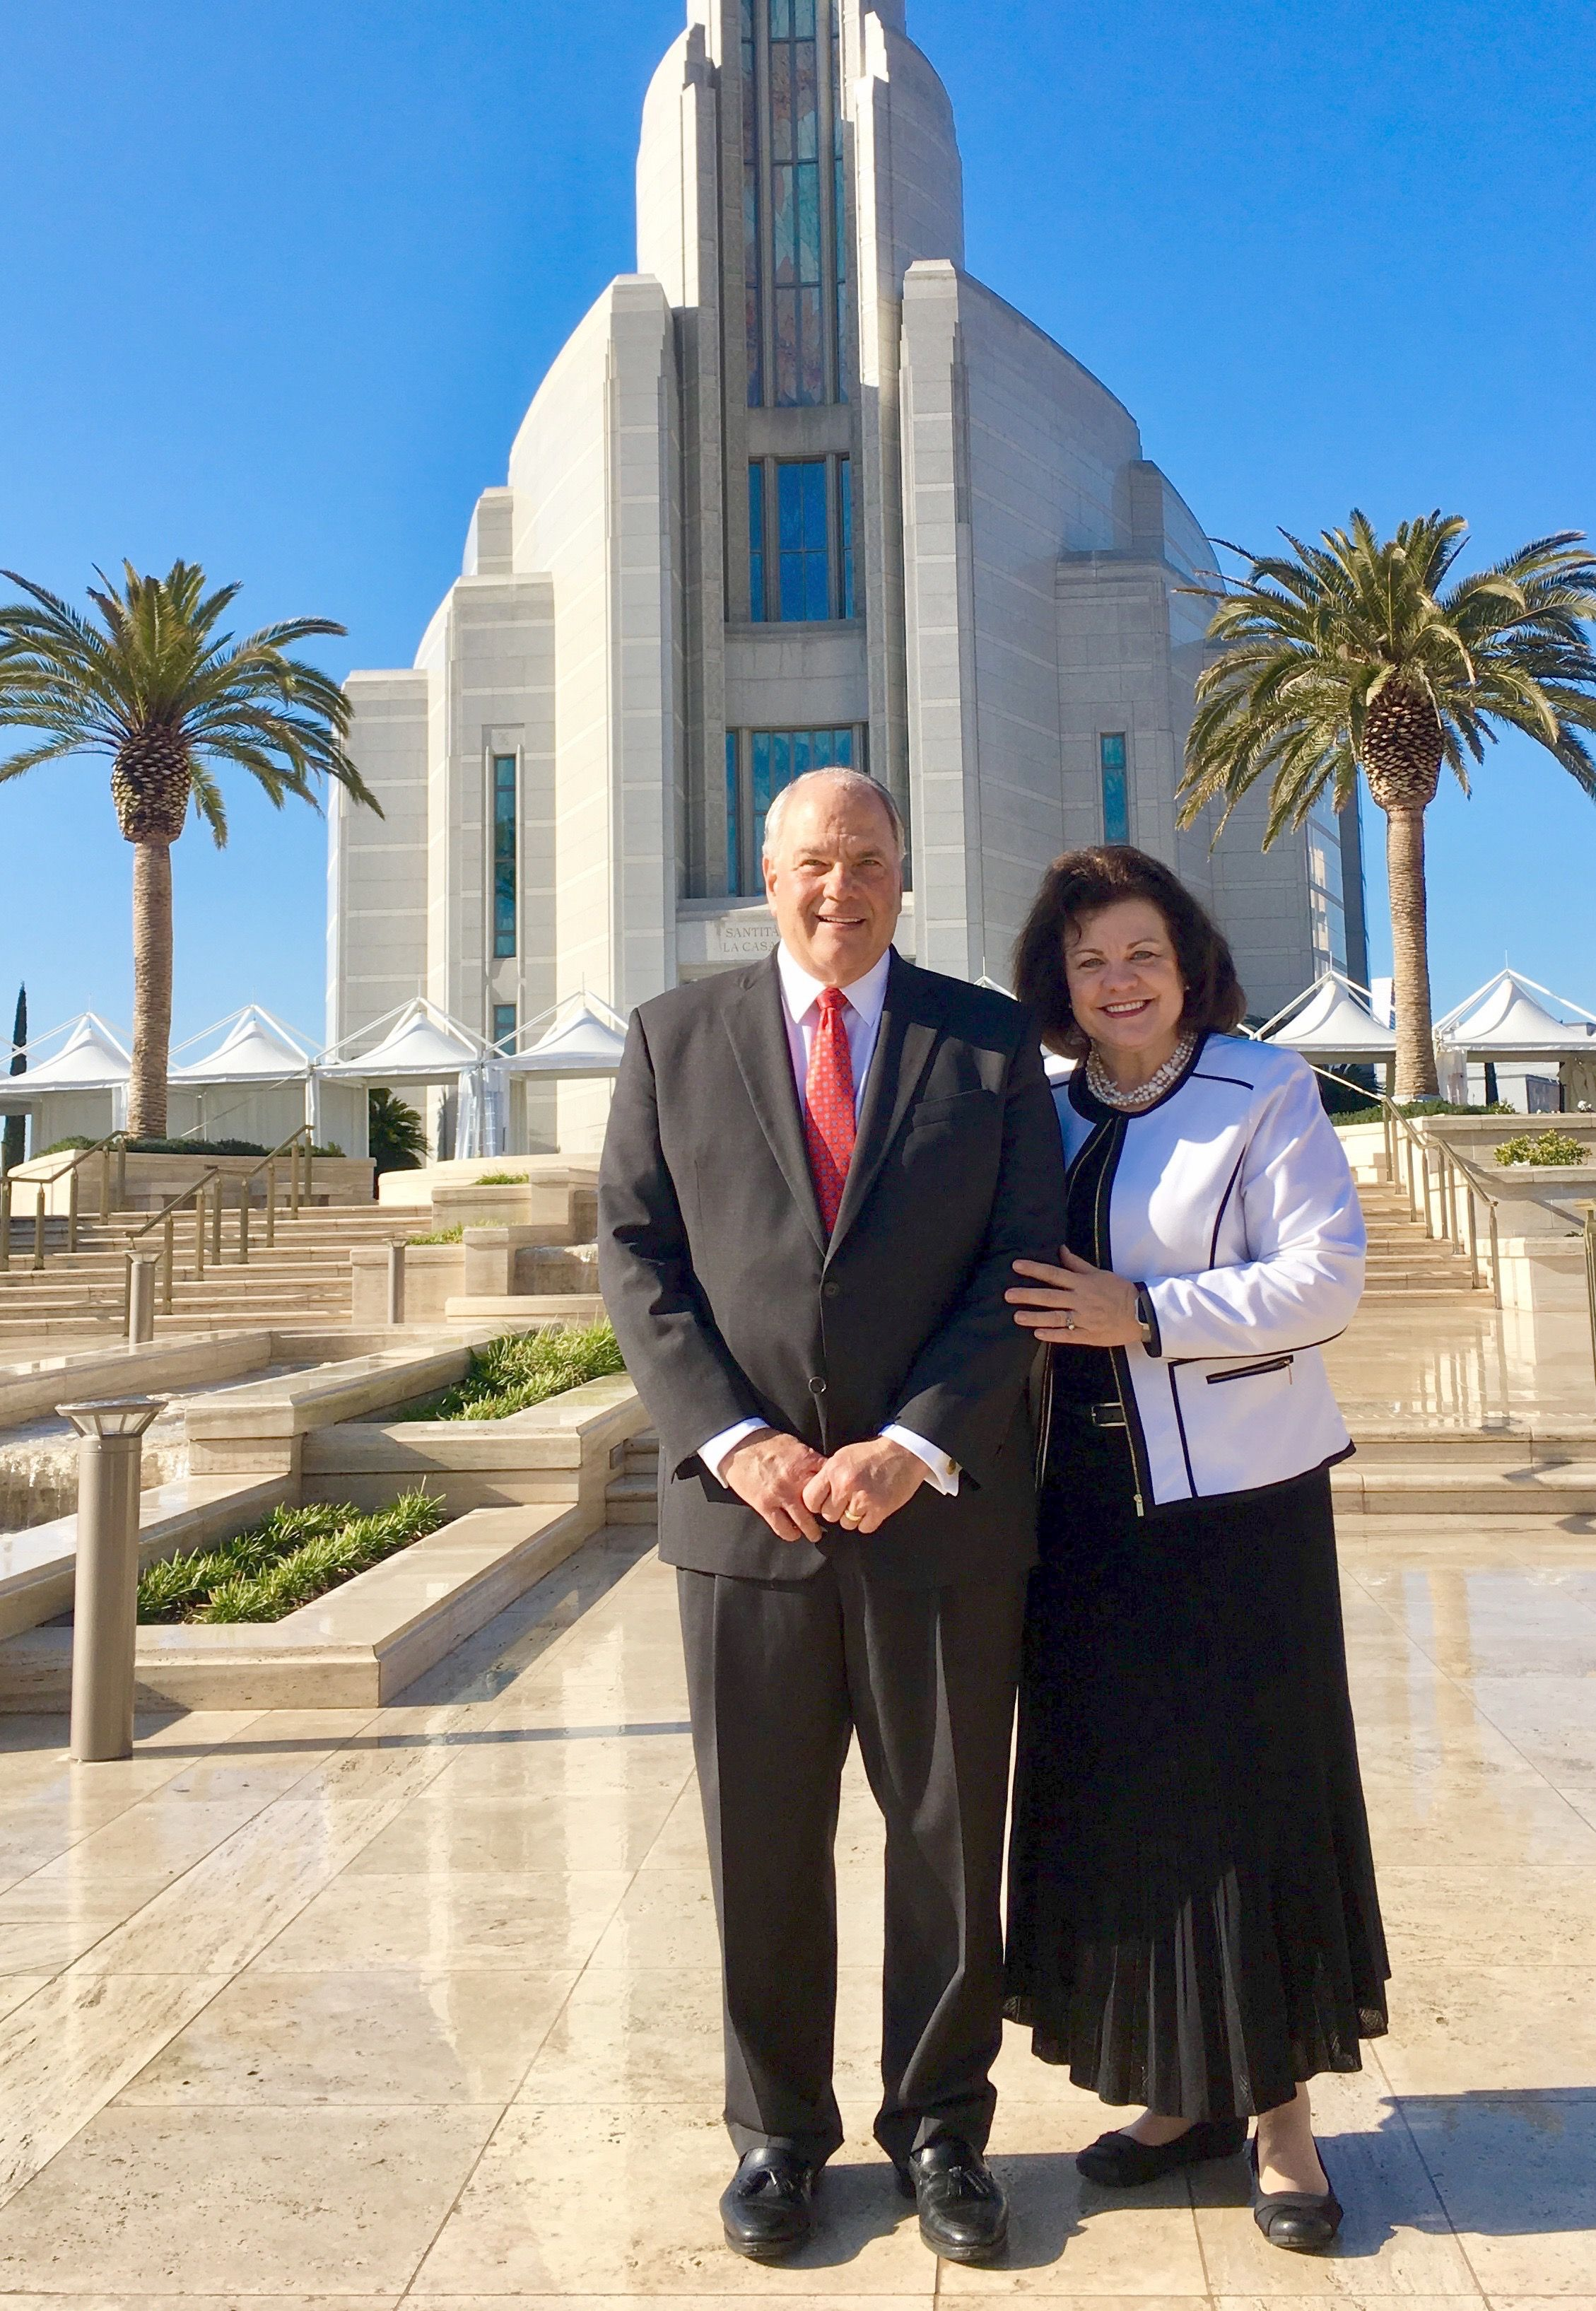 Elder Ronald A. Rasband and his wife, Sister Melanie Rasband, stand in front of the Rome Italy Temple.